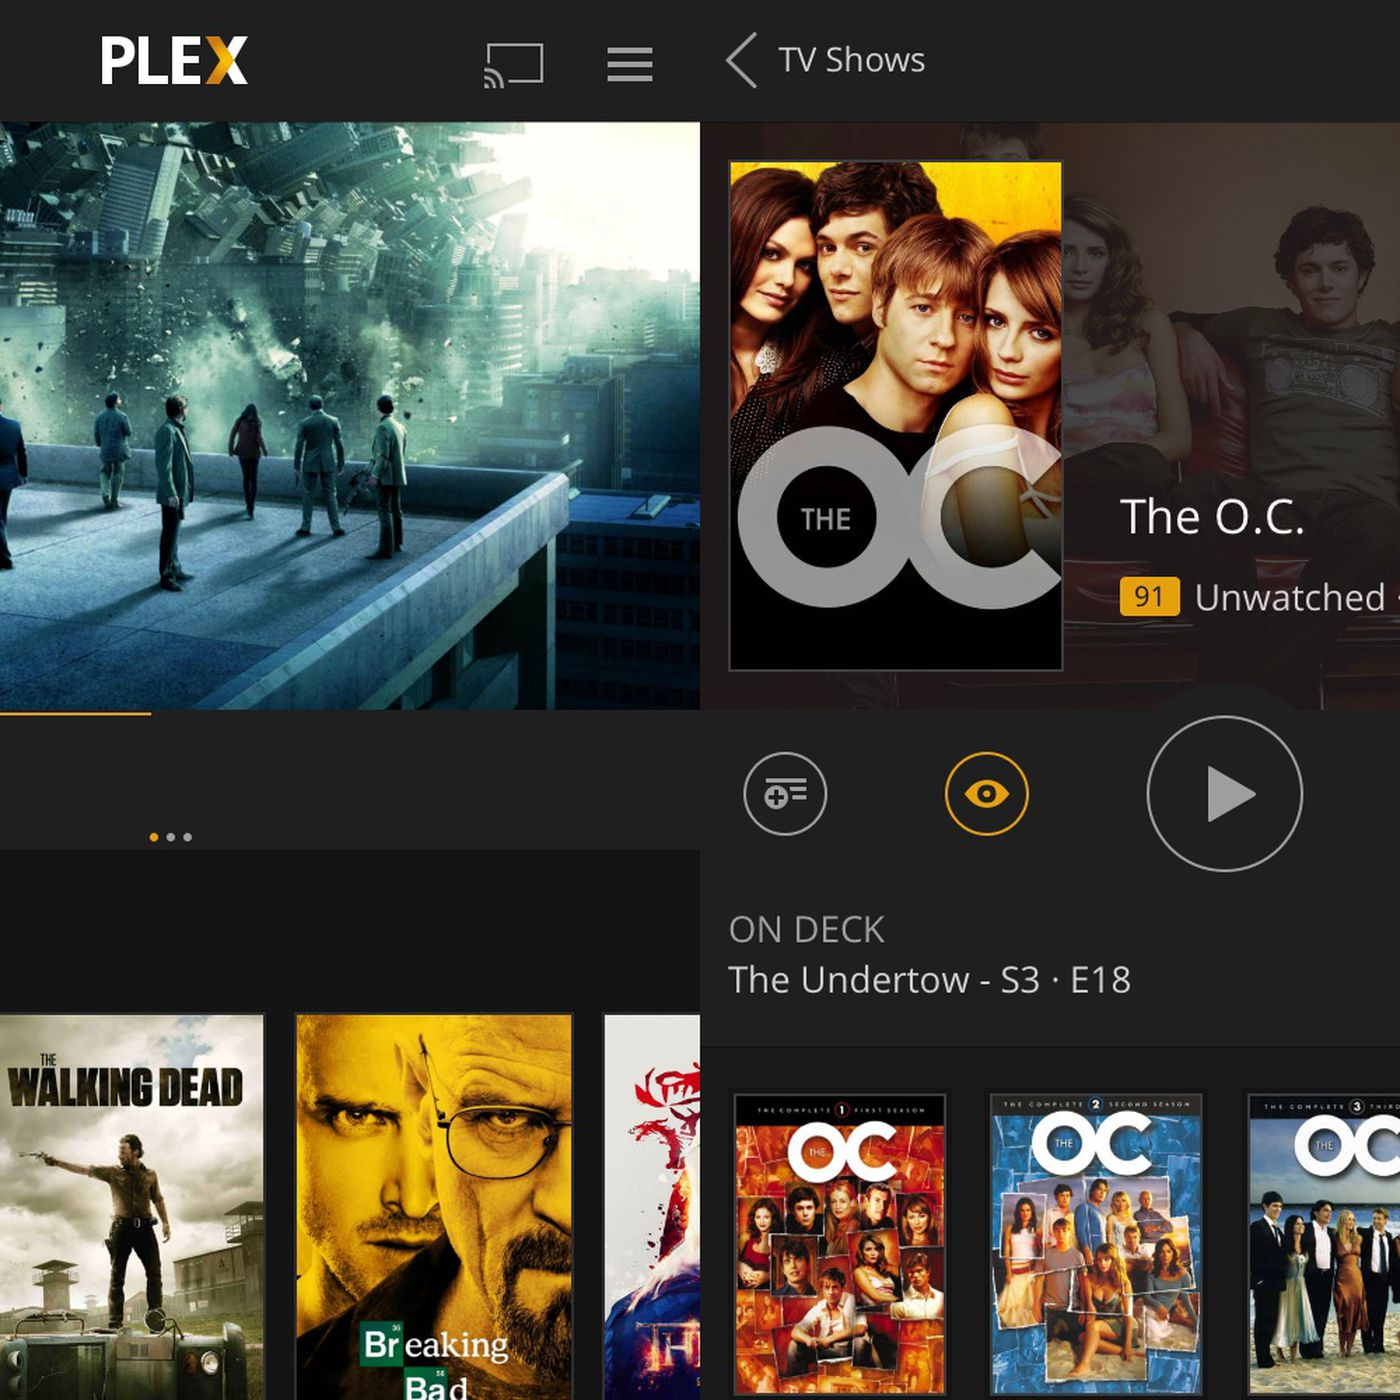 Plex launches revamped app for iPhone and iPad - The Verge